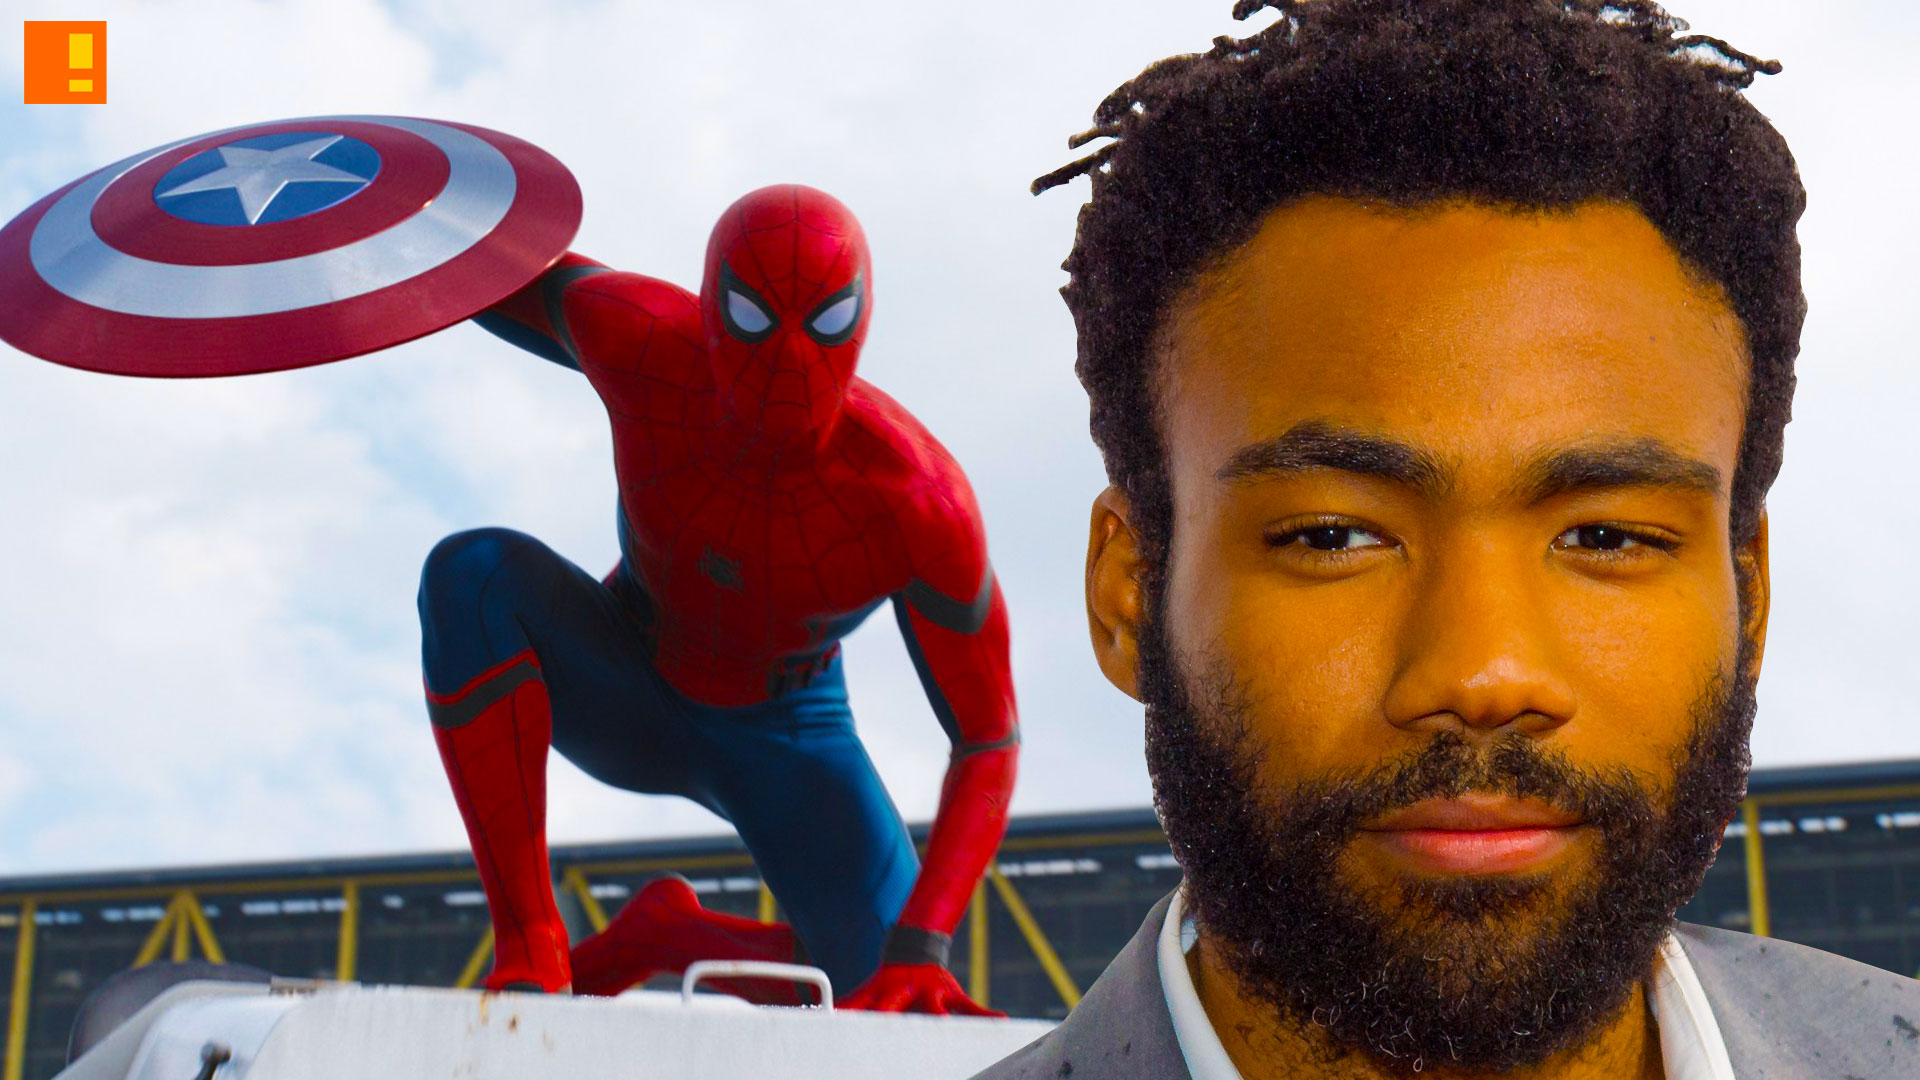 donald glover,spider-man, spiderman, spider-man homecoming, spider-man: homecoming, casting , donald glover, childish gambino, entertainment on tap,the action pixel, @theactionpixel